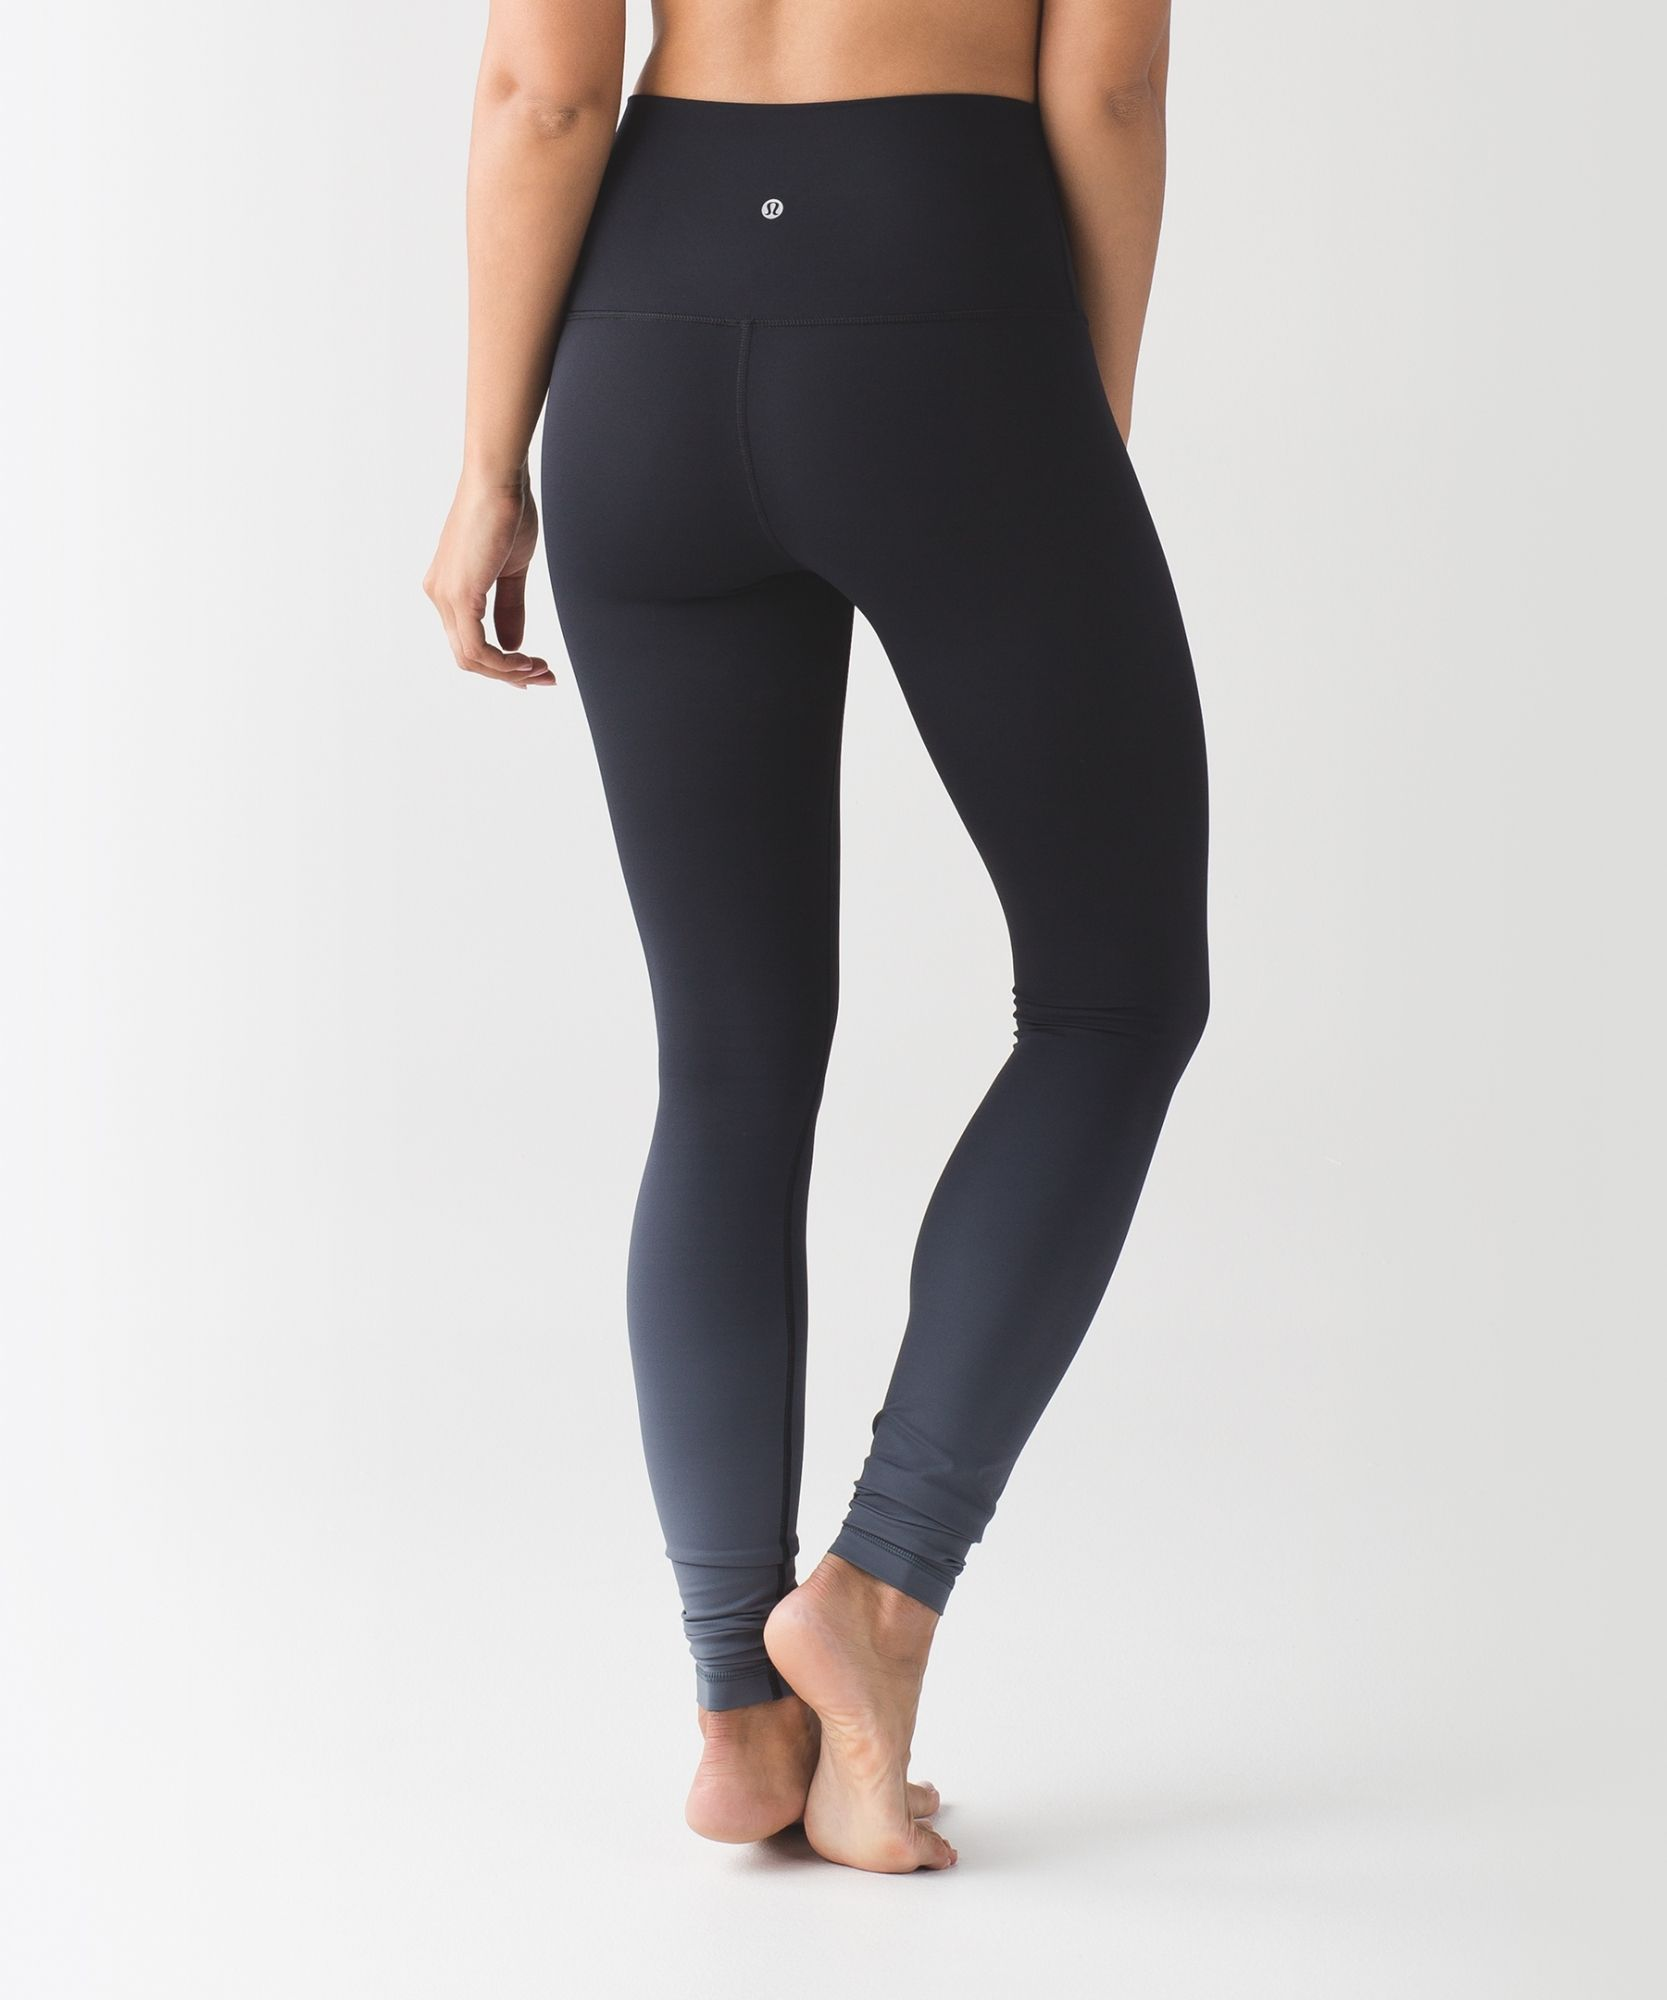 c611c95d7b74a6 These versatile, high-rise pants were designed to fit like a second skin—